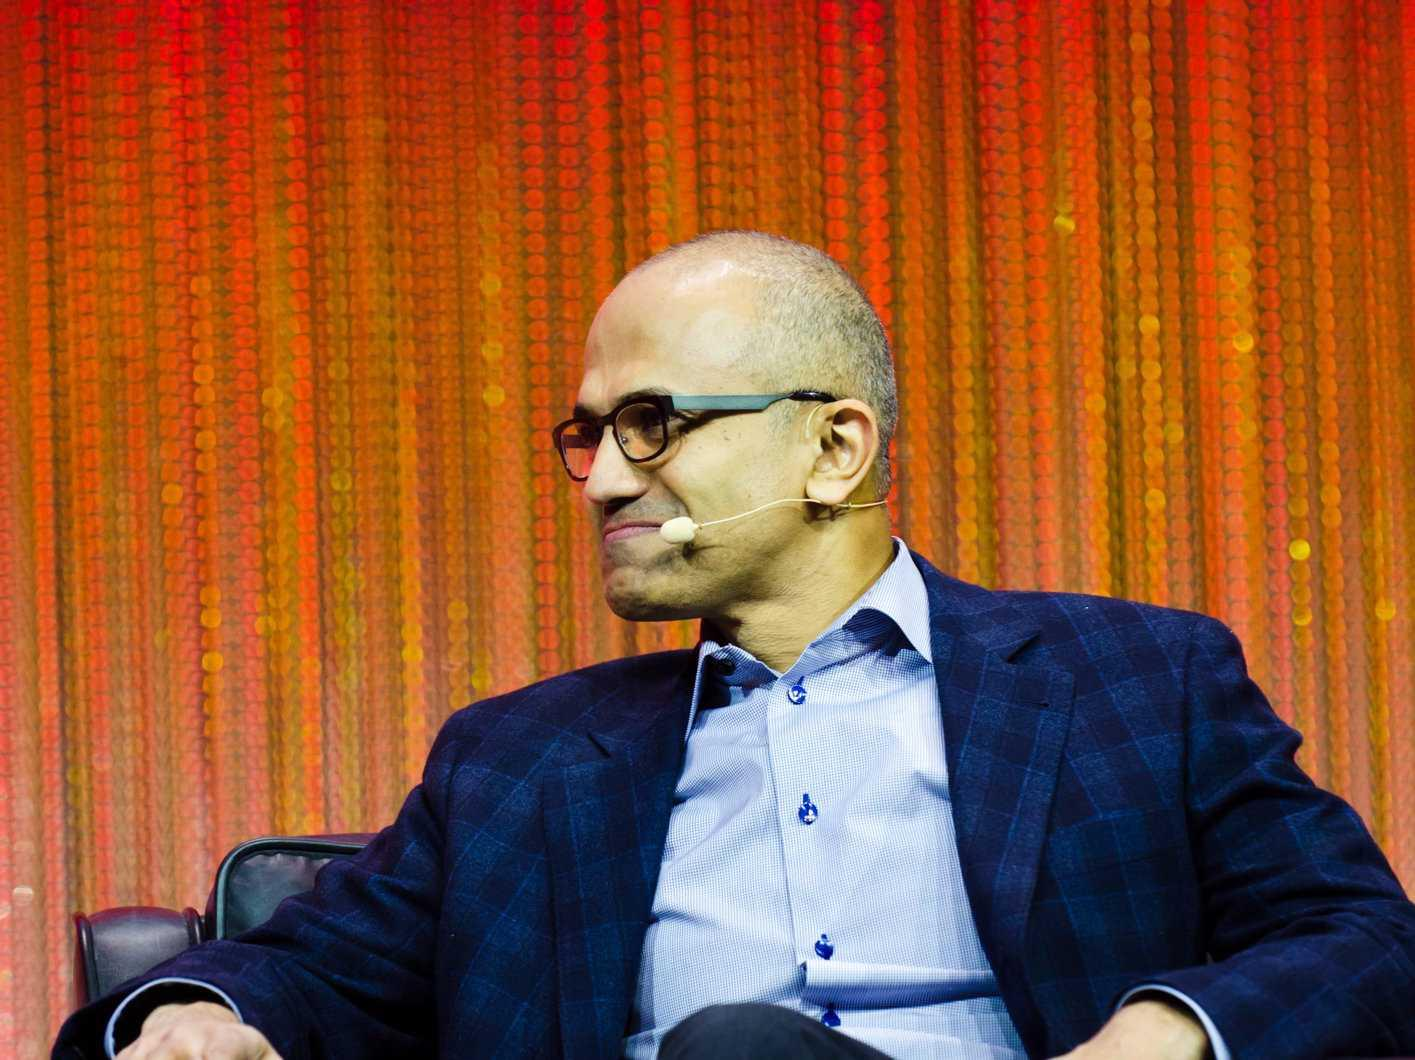 Microsoft just made two deals that never would have happened under Steve Ballmer